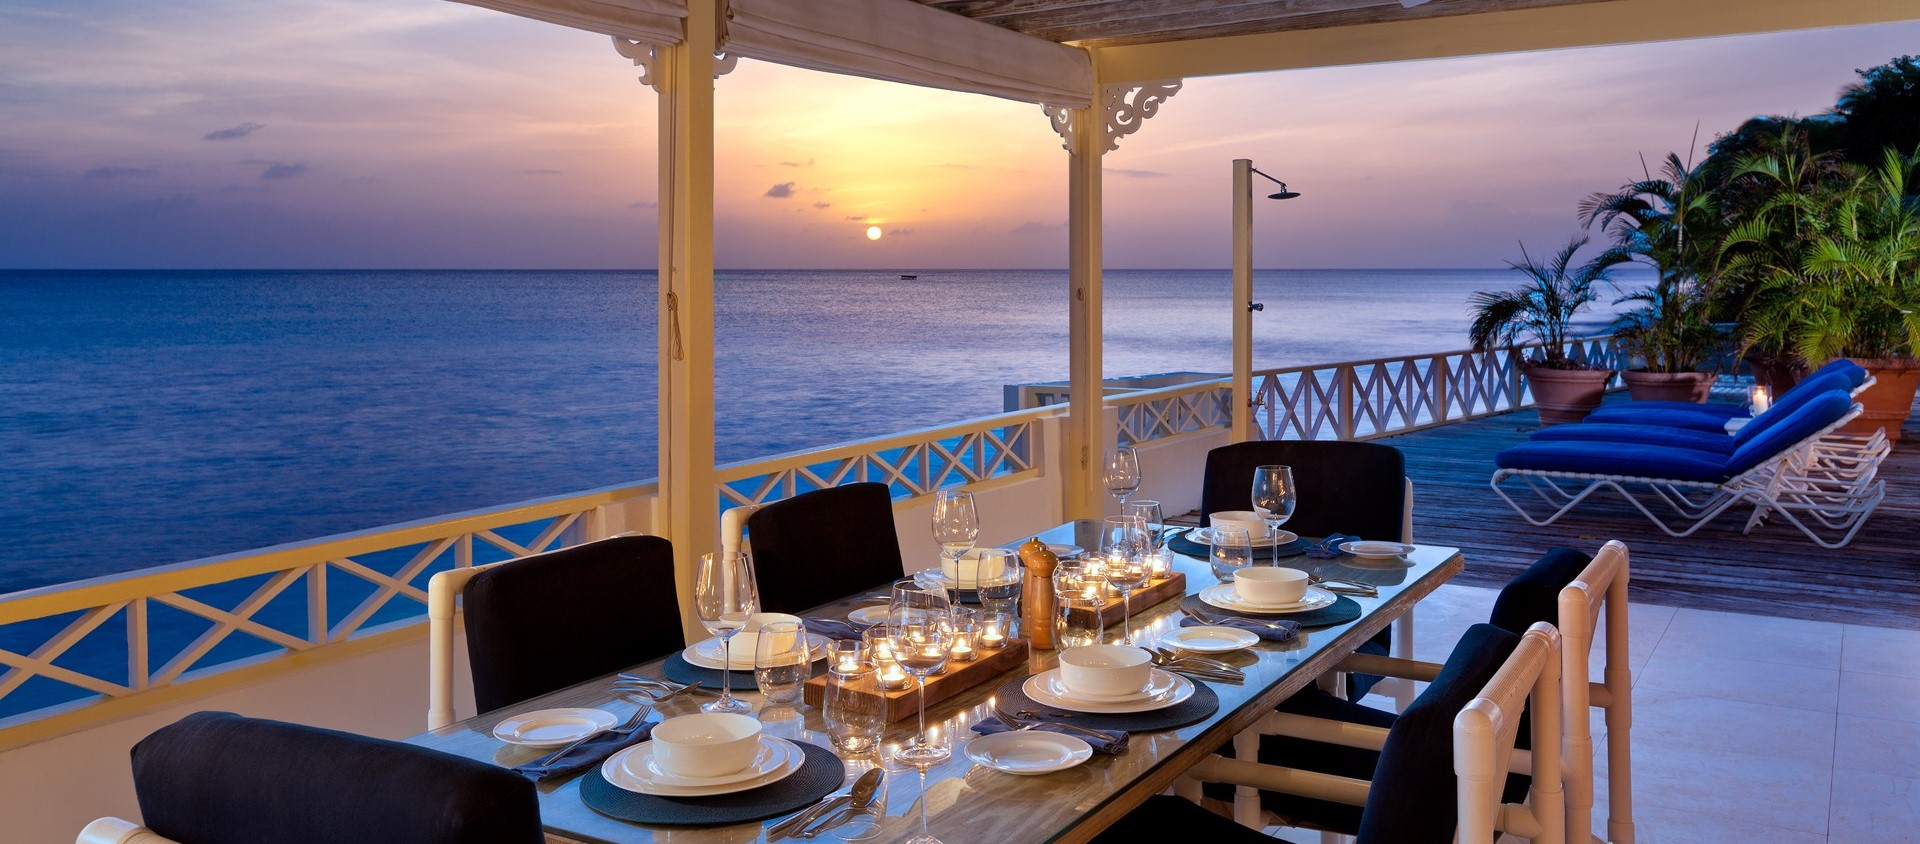 easy-reach-villa-barbados-seaside-deck